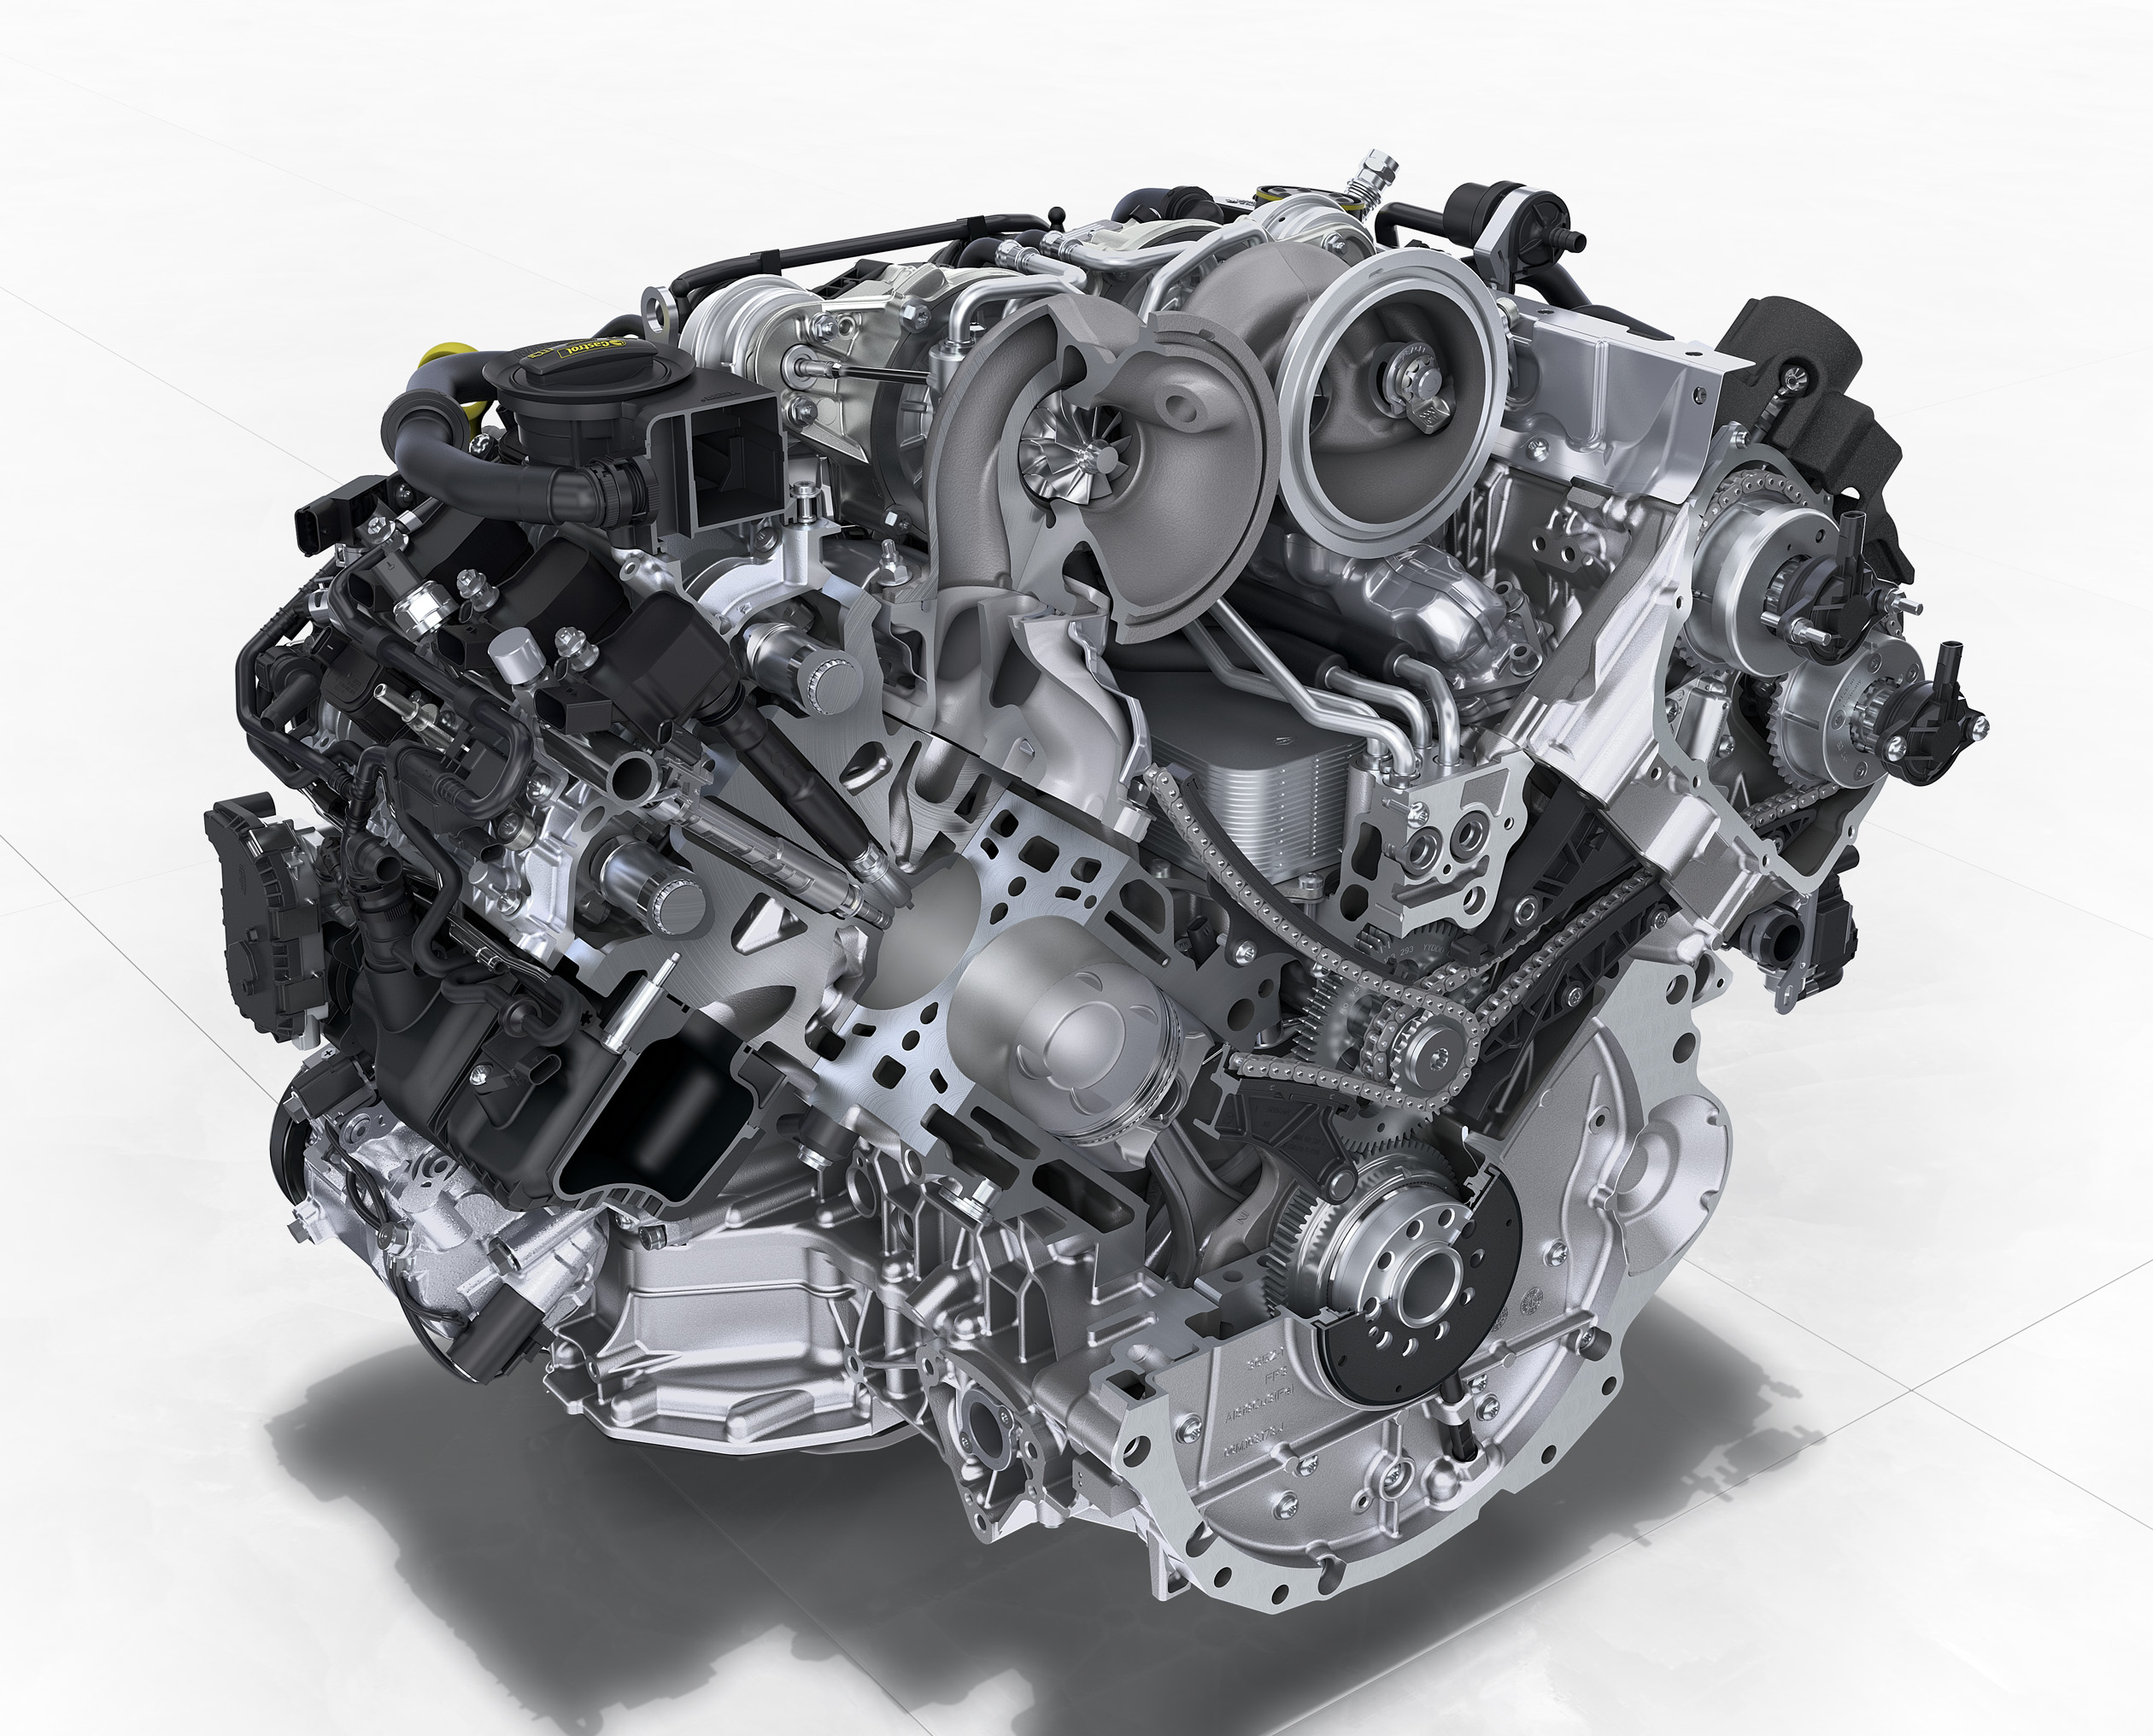 VW Group - inside engine bi-turbo gasoline V8